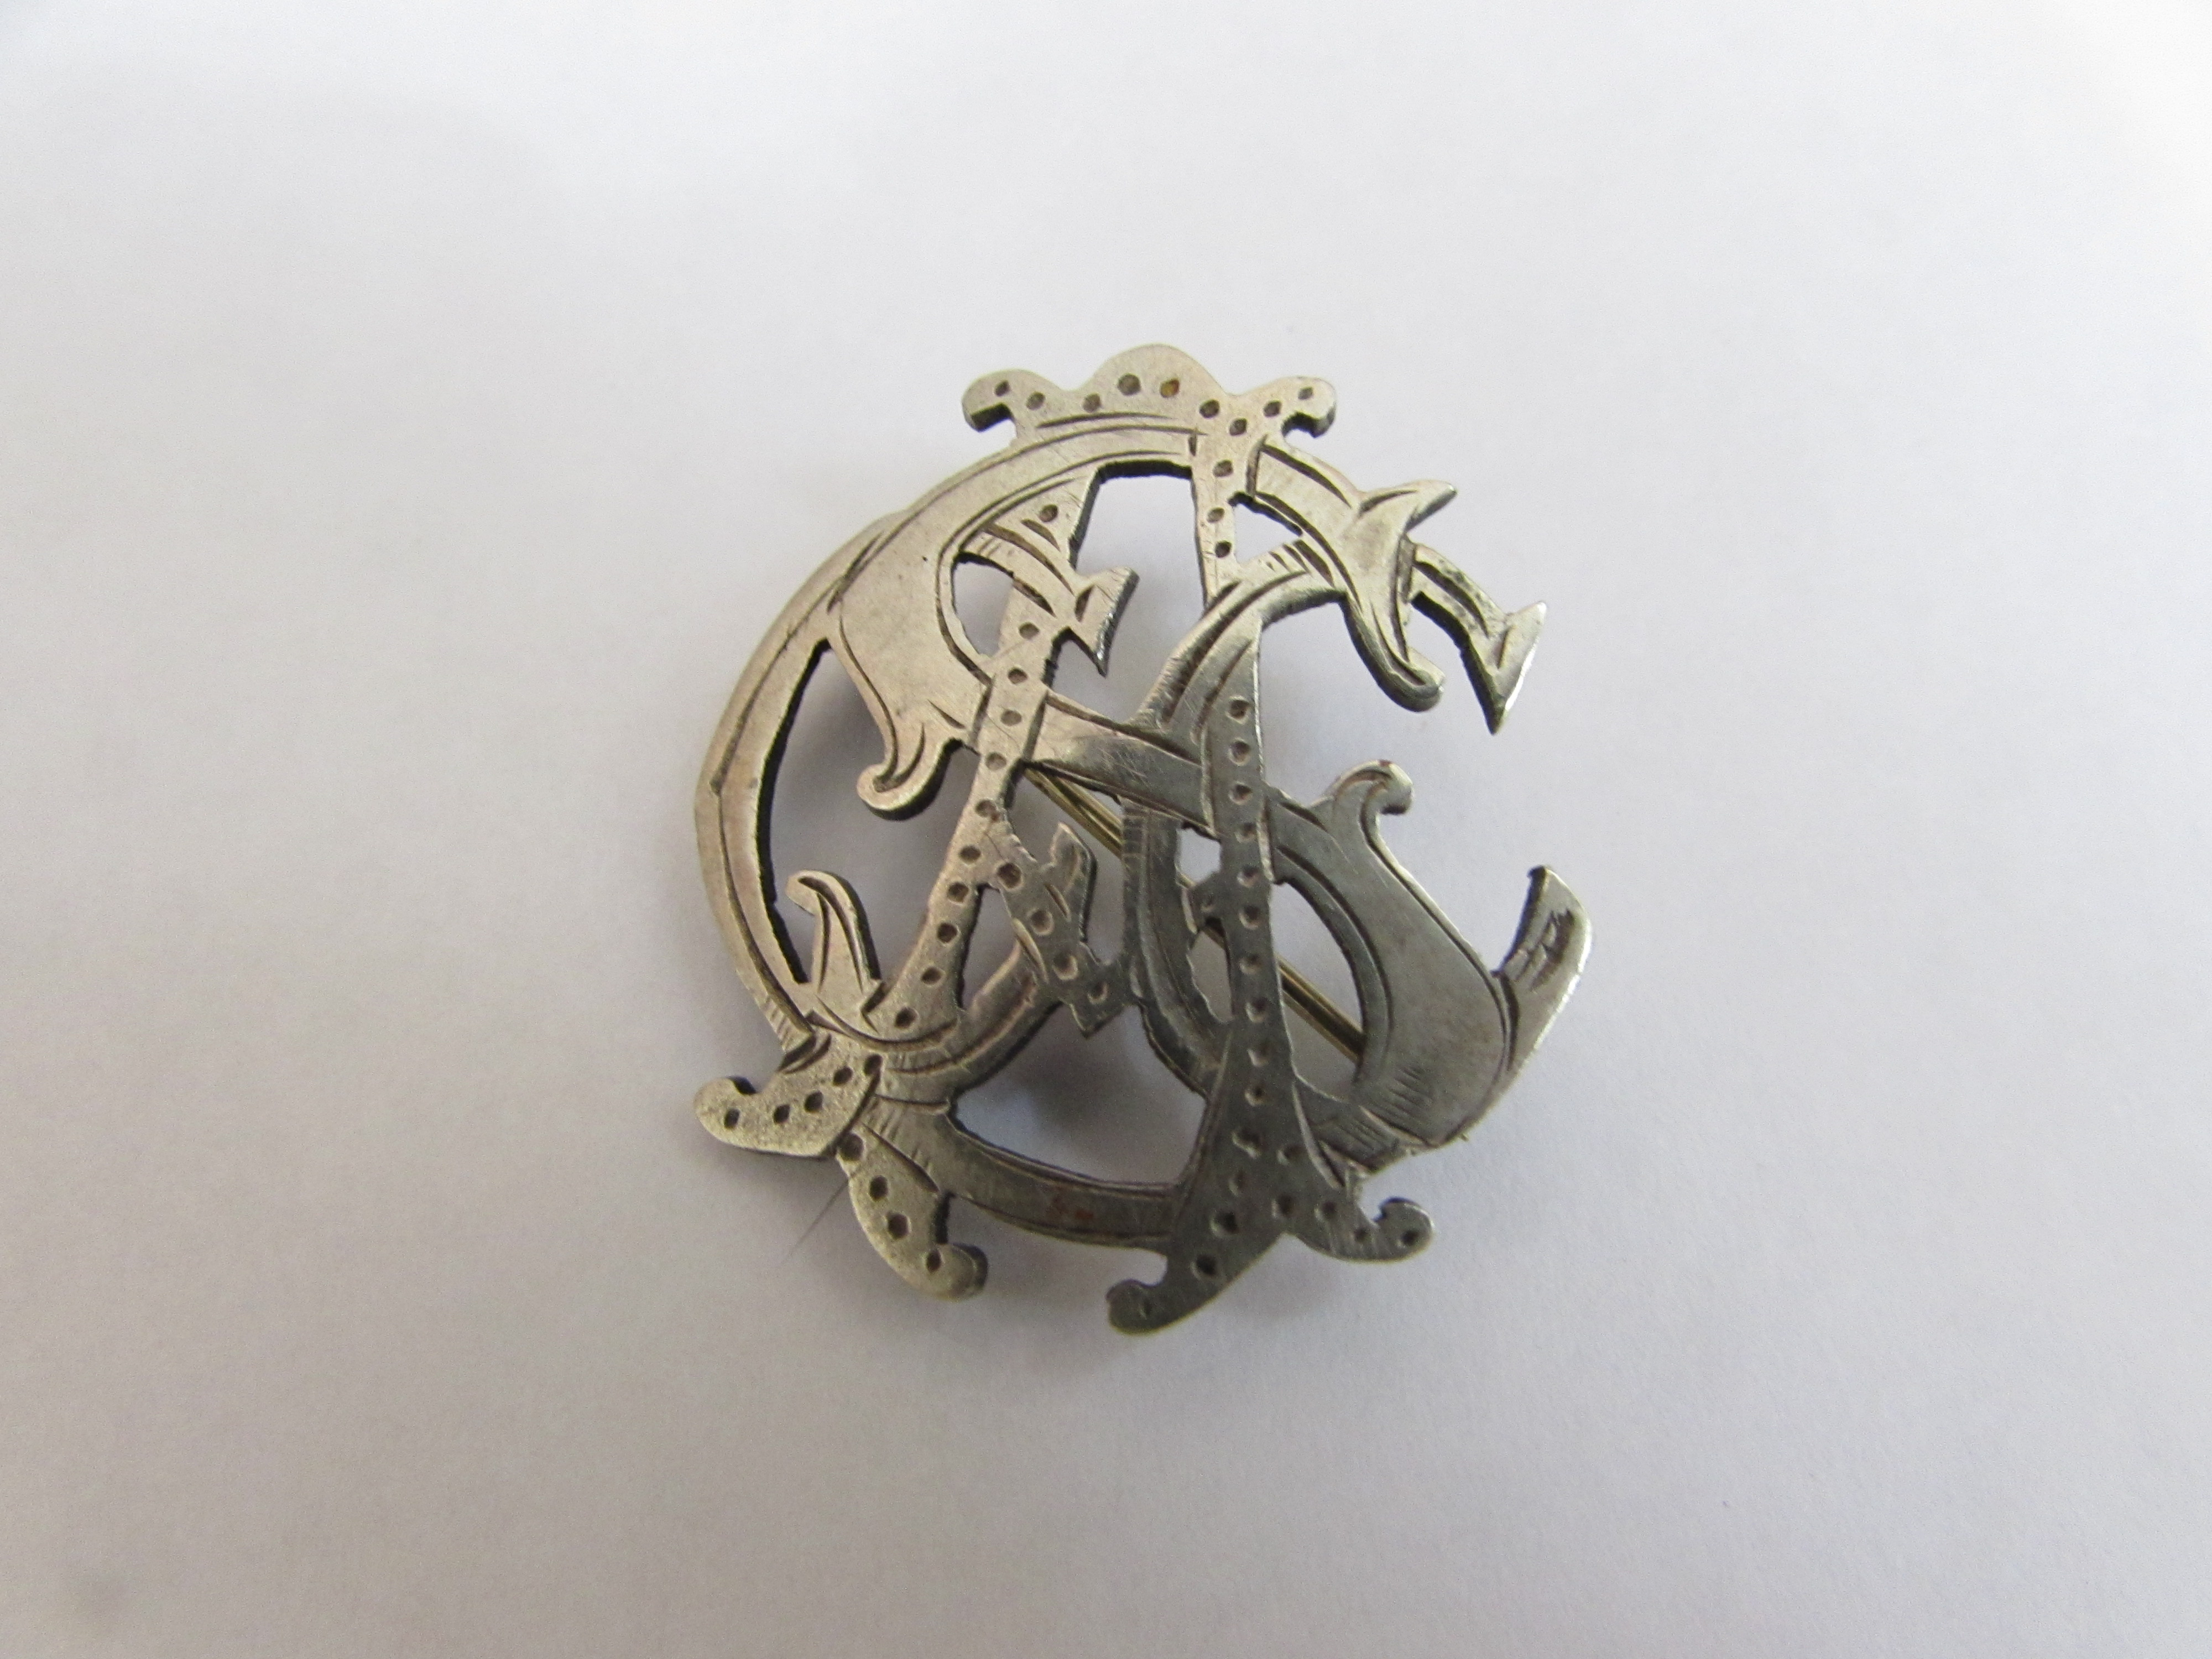 Canadian Army service corp silver brooch